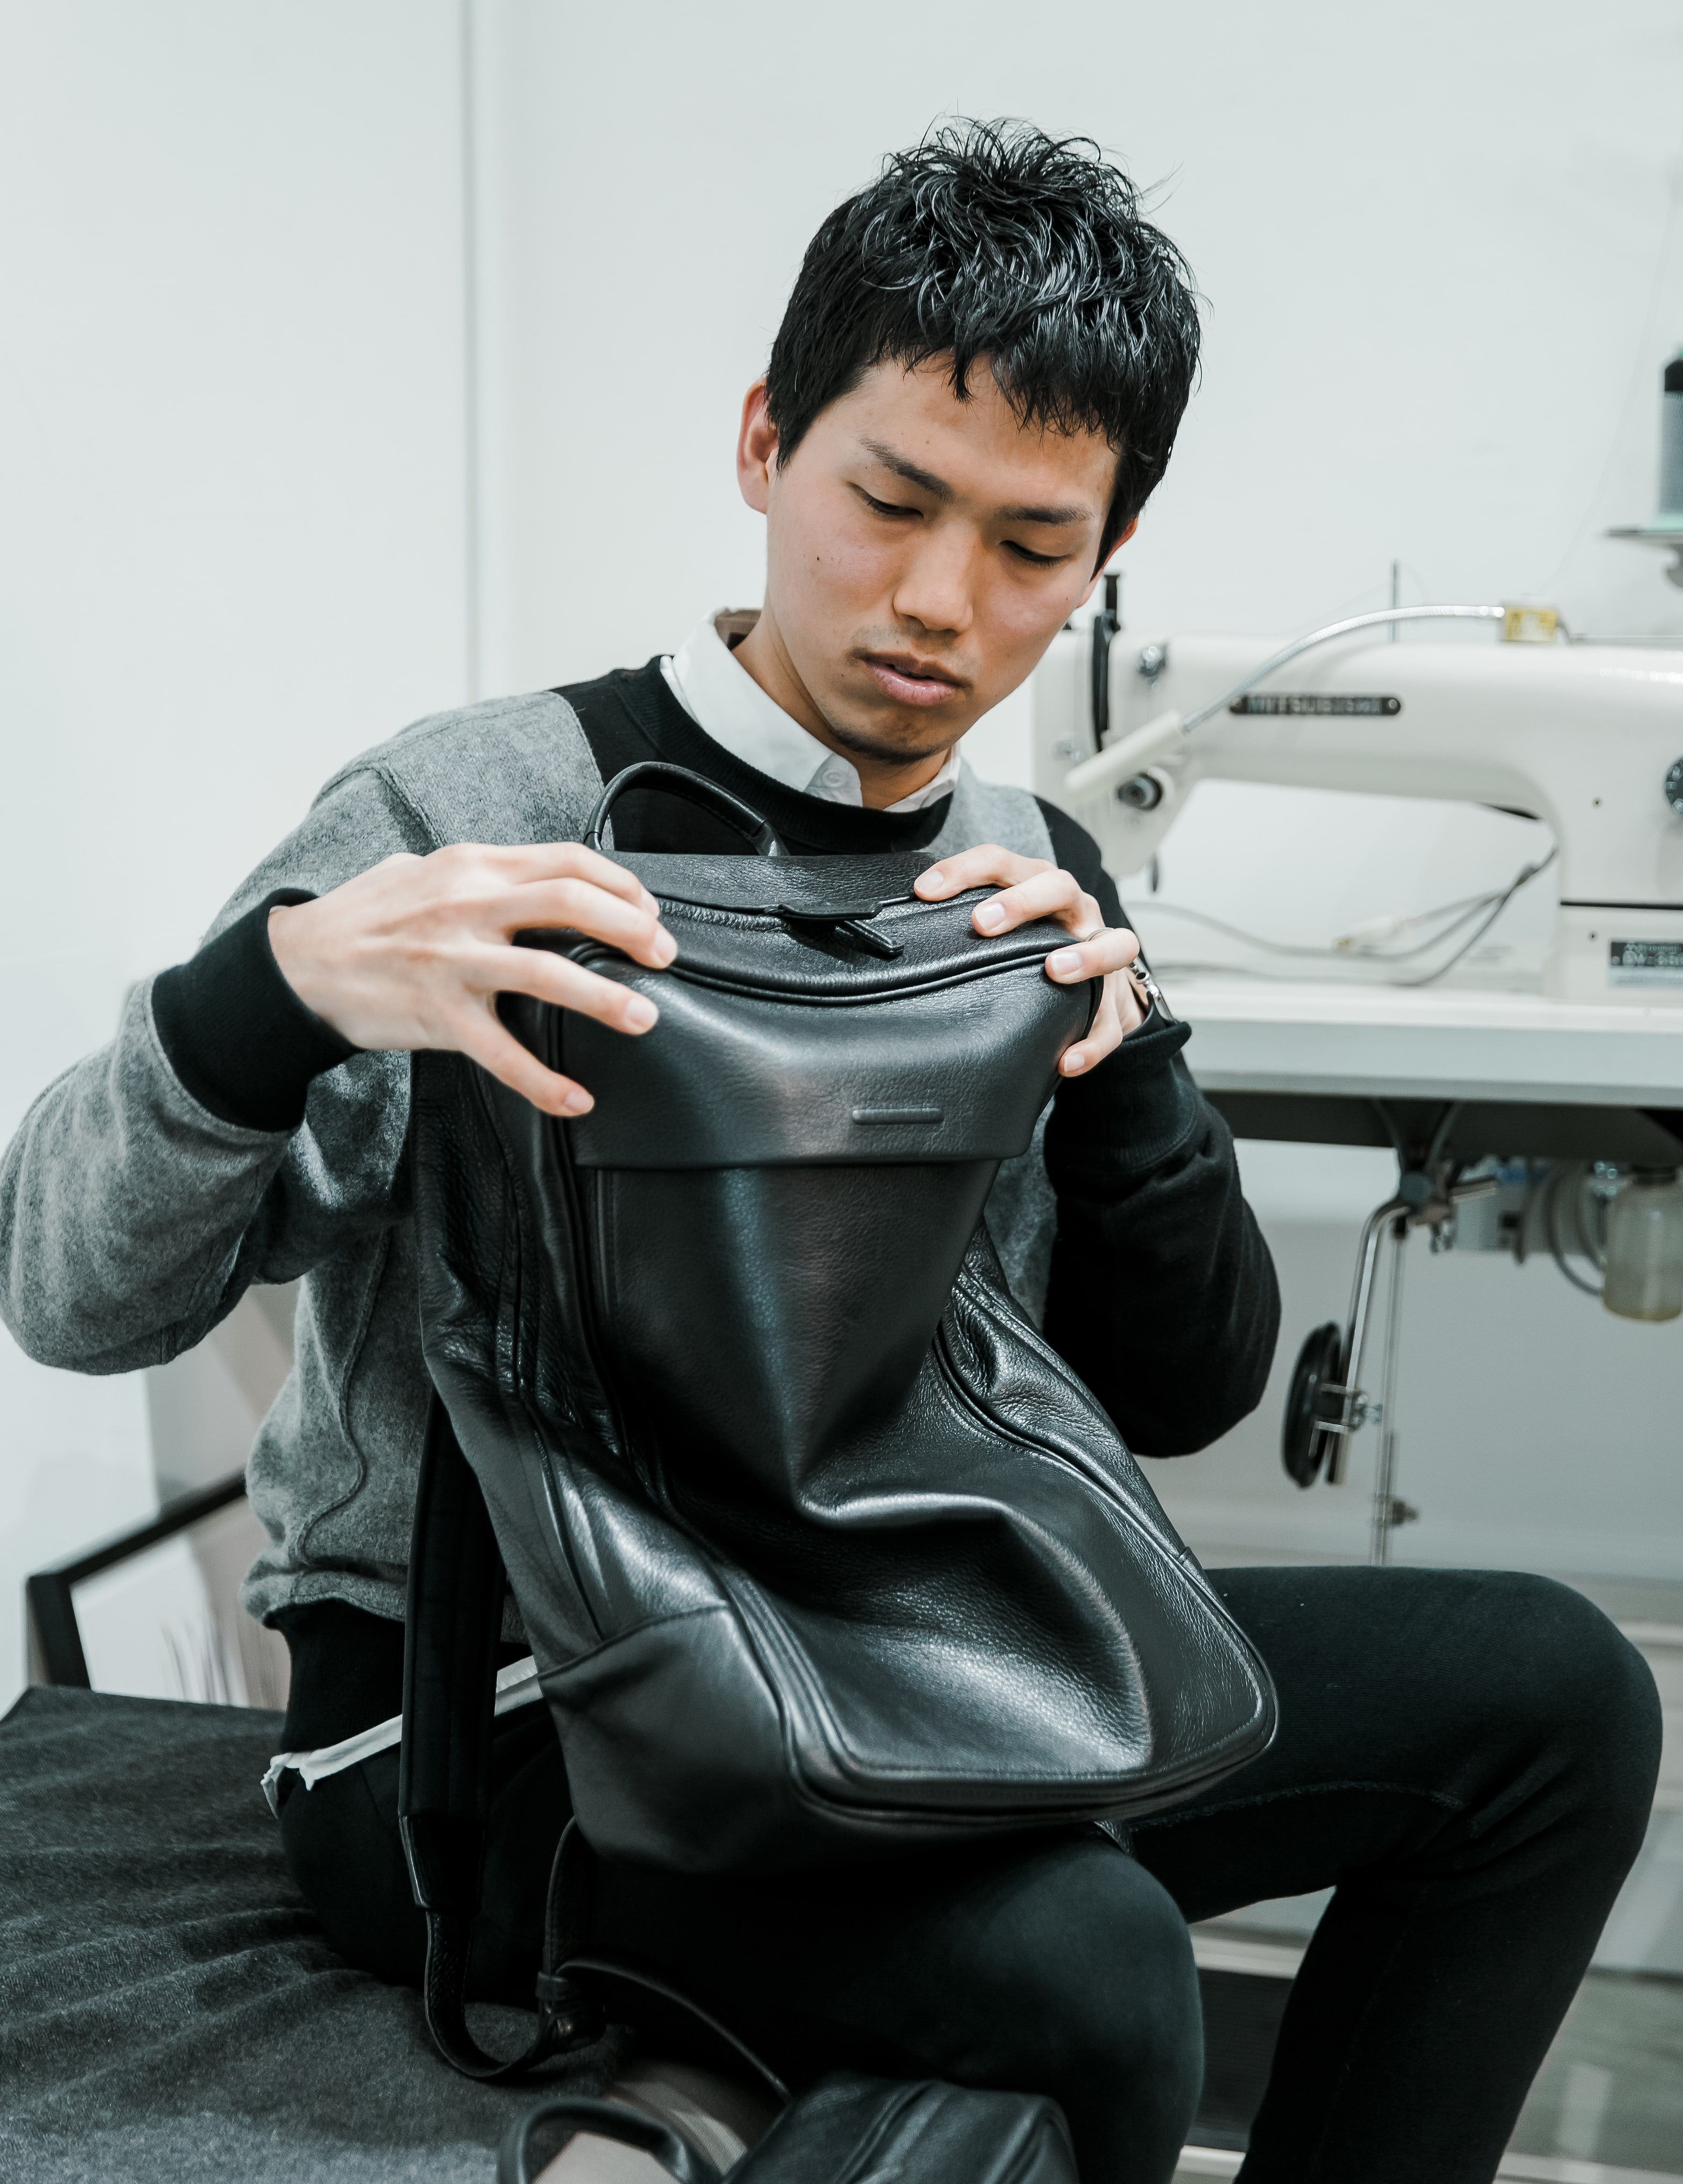 Designer Leather Maintenance